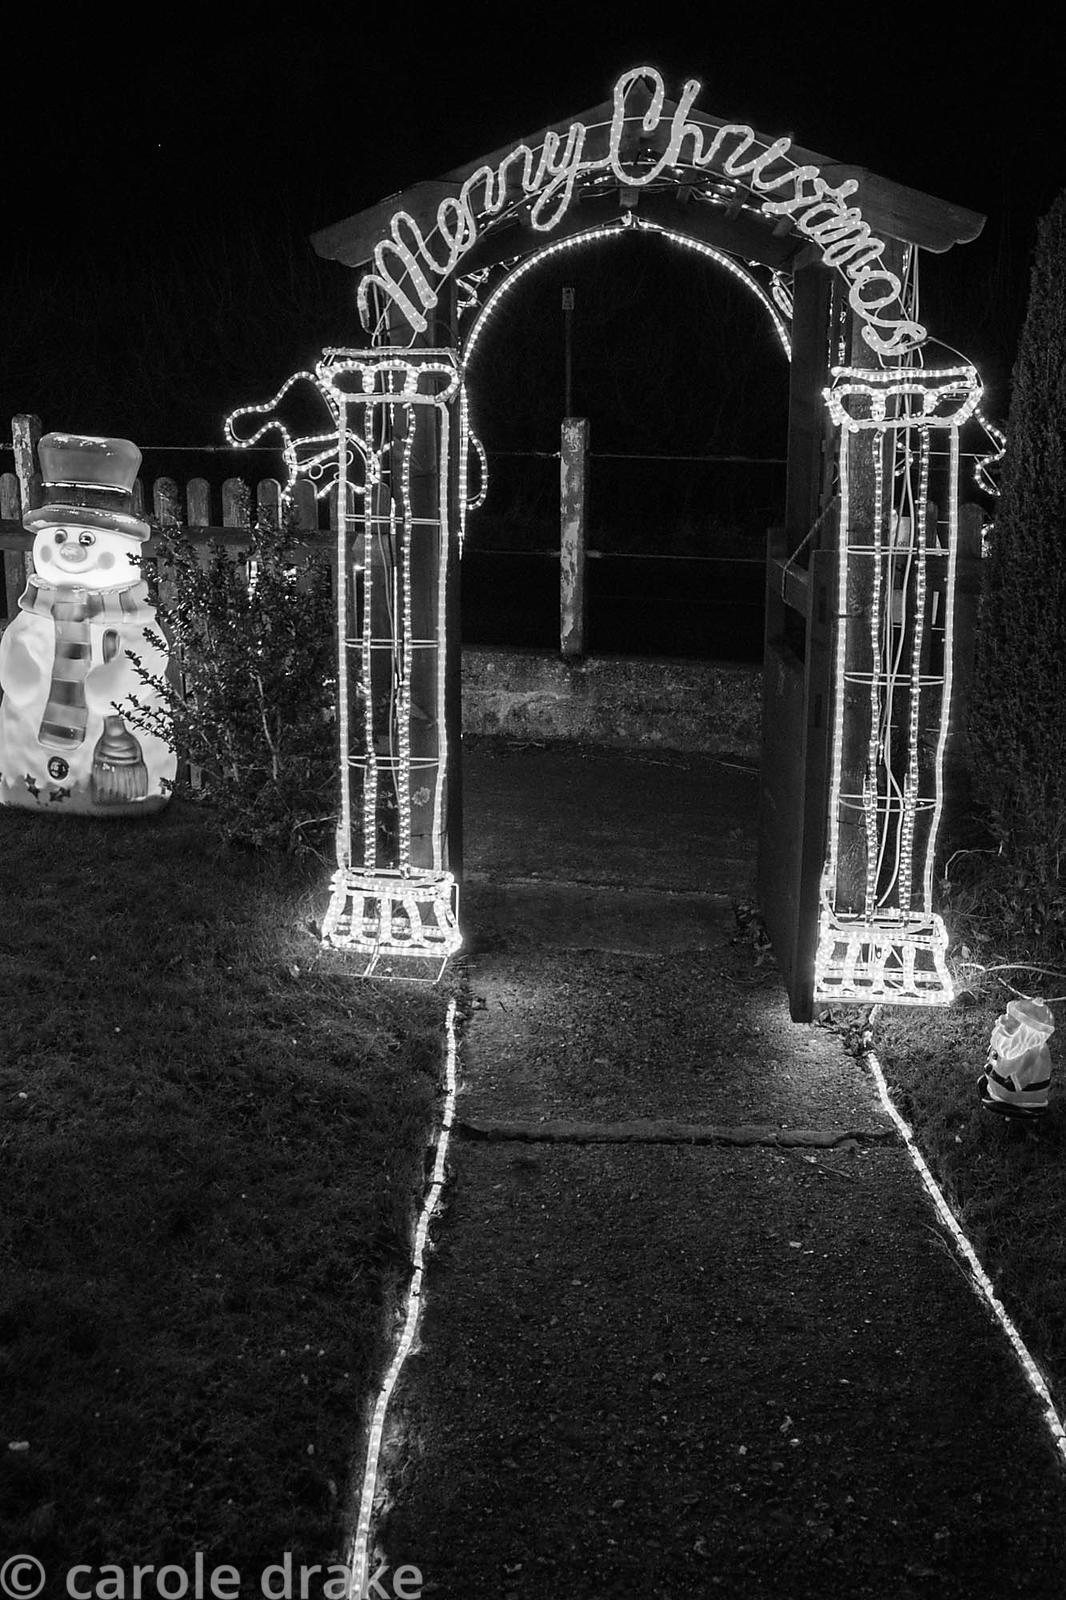 Illuminated Christmas garden.